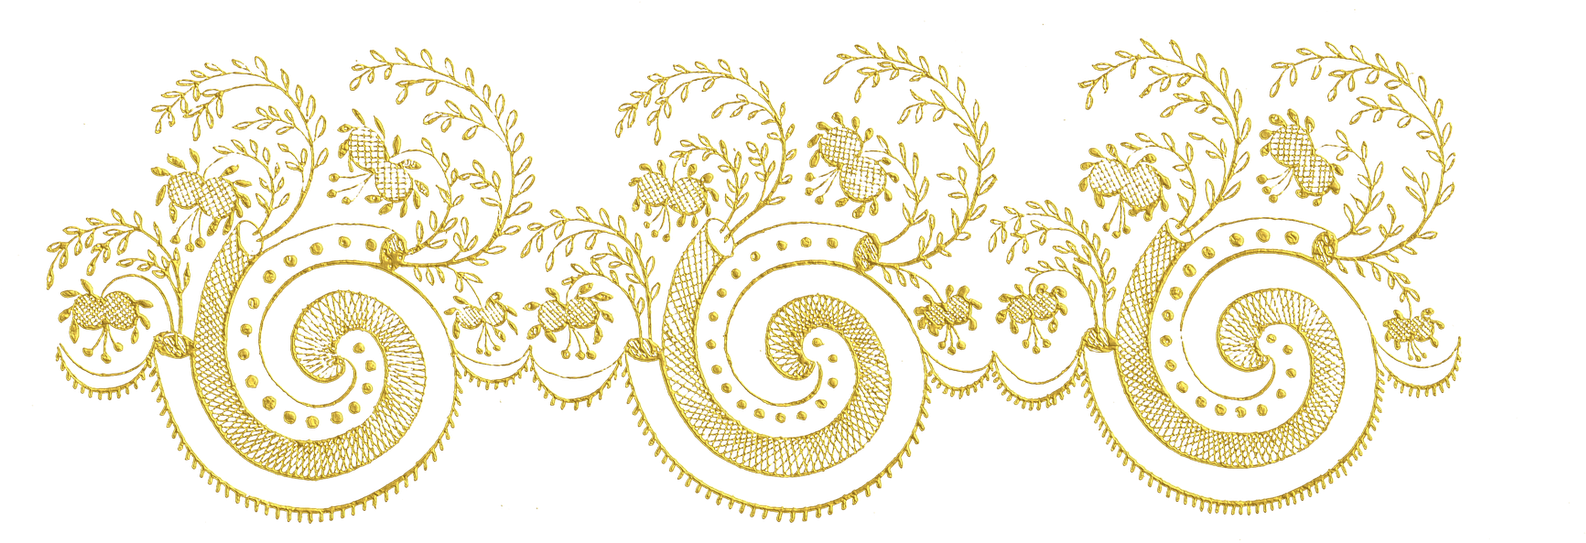 Gold pattern png. Download hd golden abstract